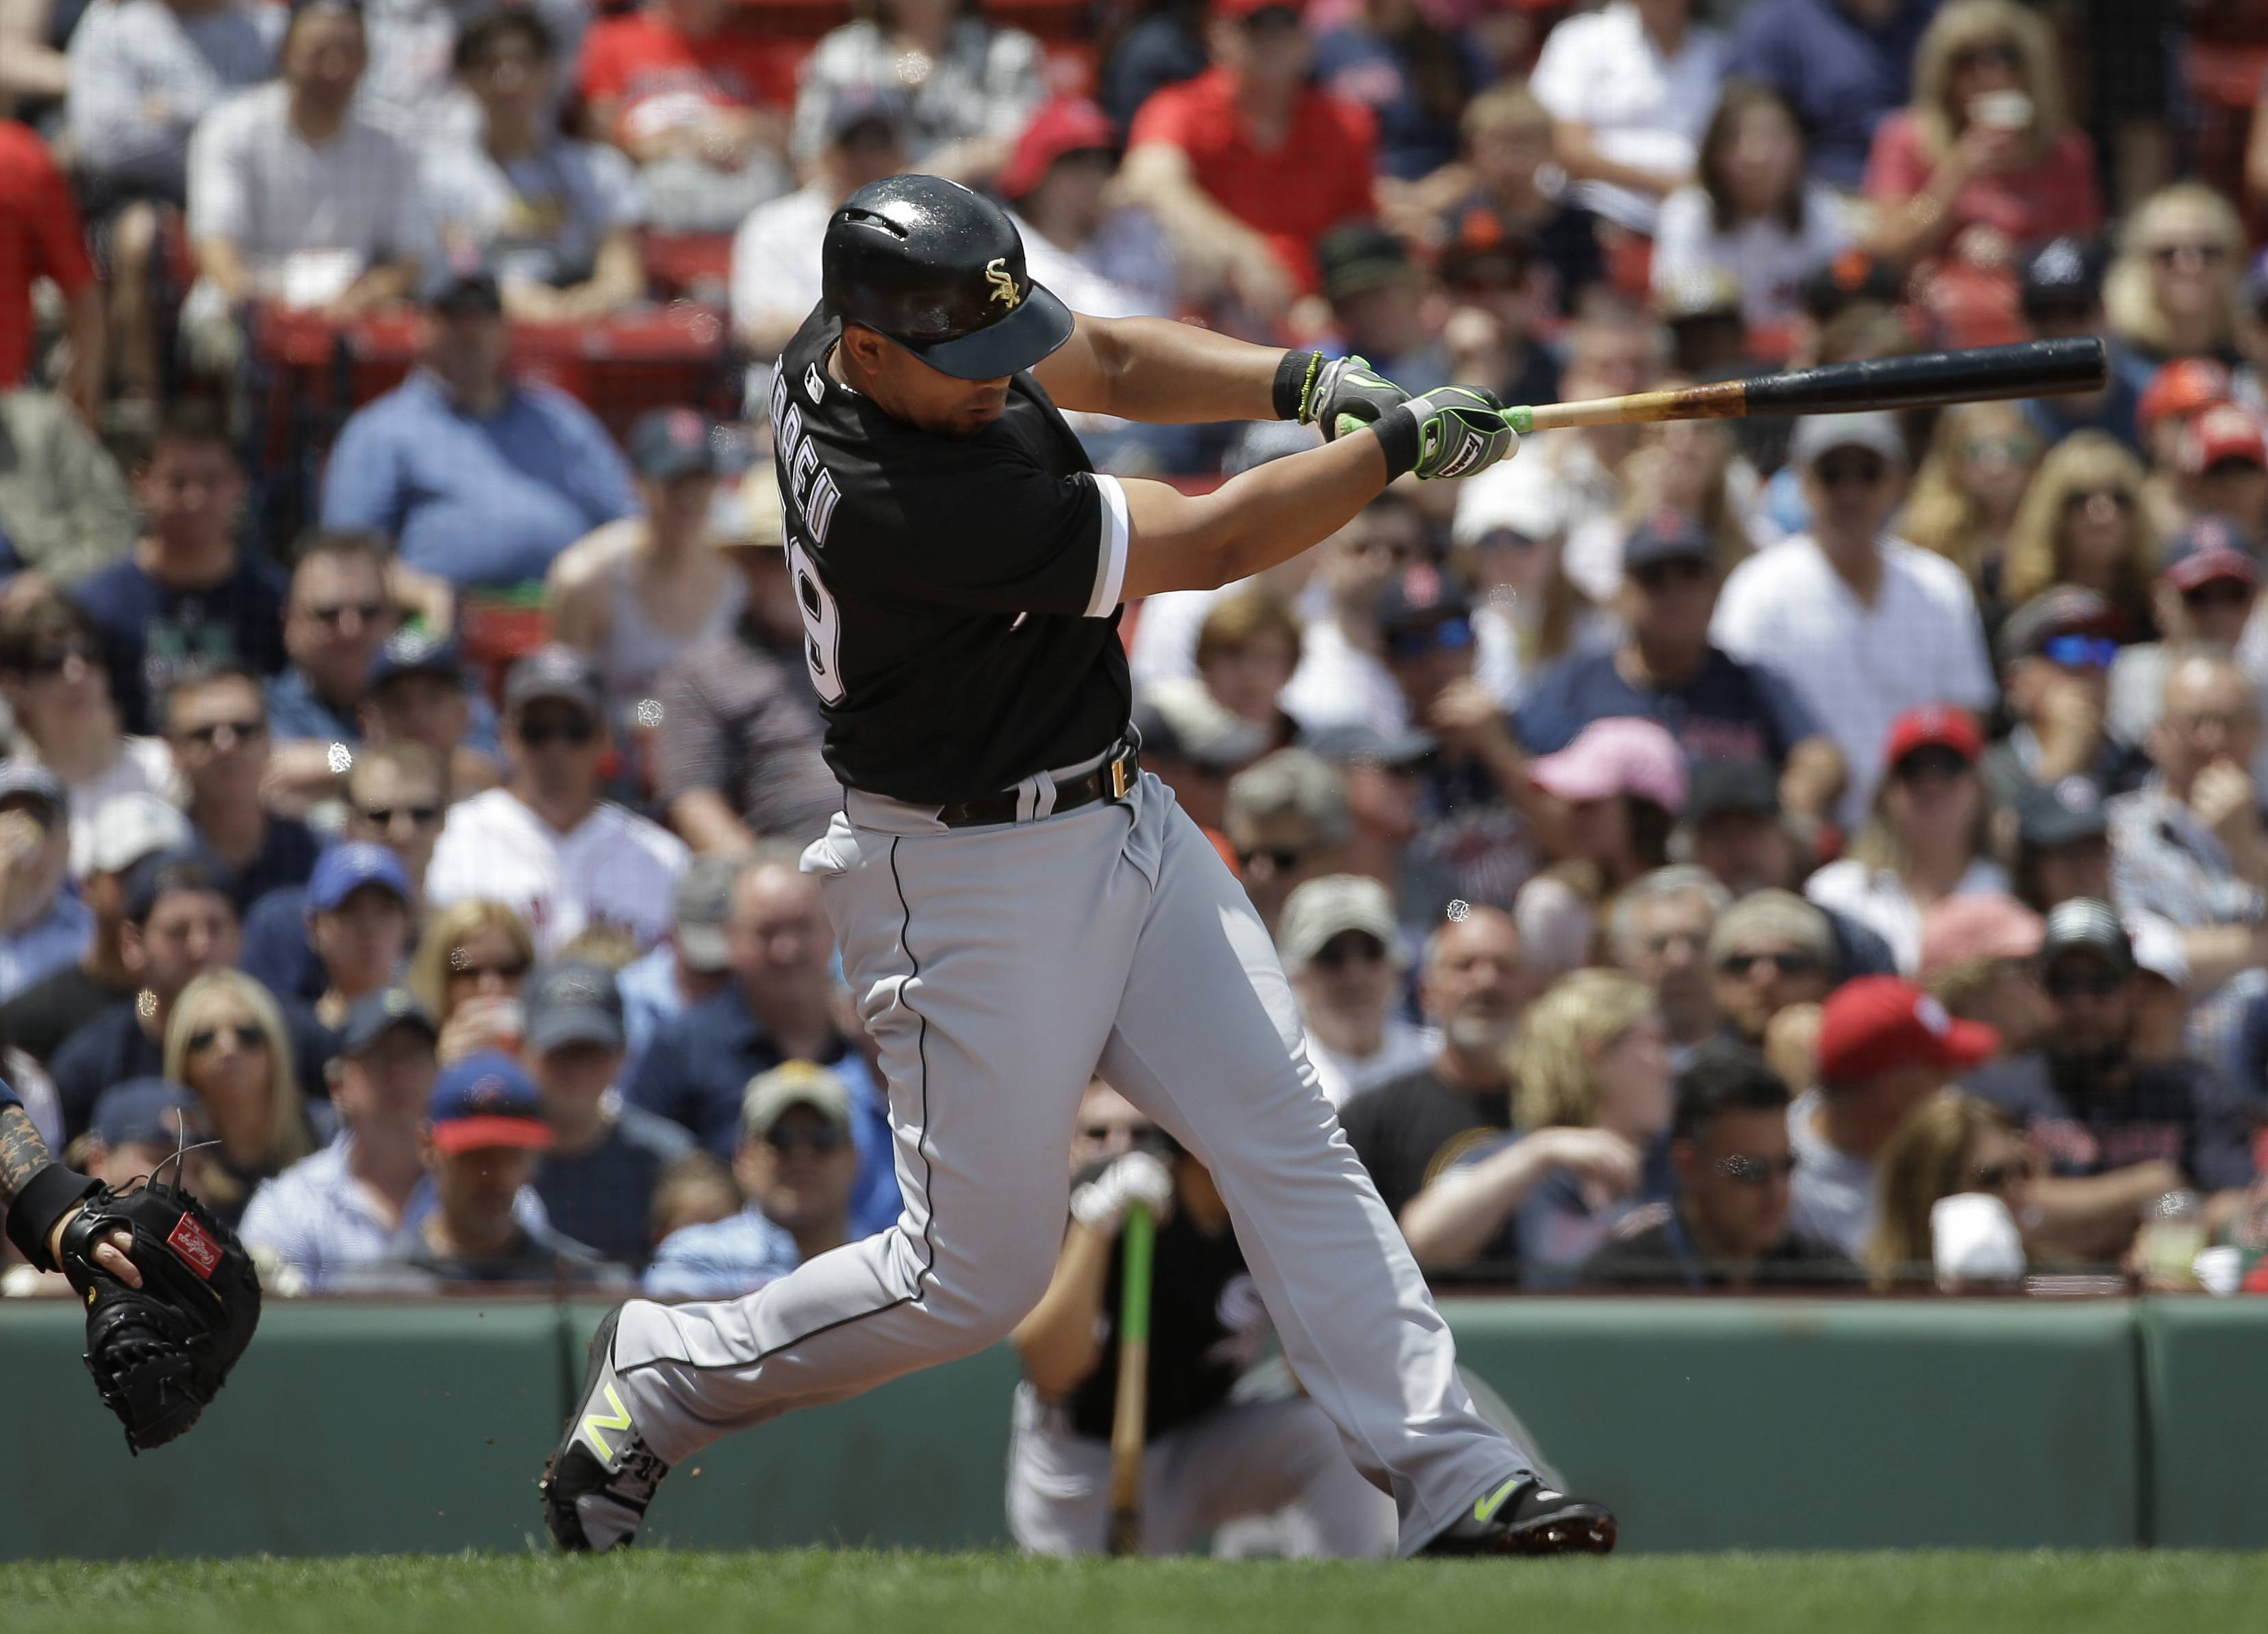 Chicago White Sox's Jose Abreu hits an RBI double in the first inning of a baseball game against the Boston Red Sox, Sunday, June 10, 2018, in Boston.